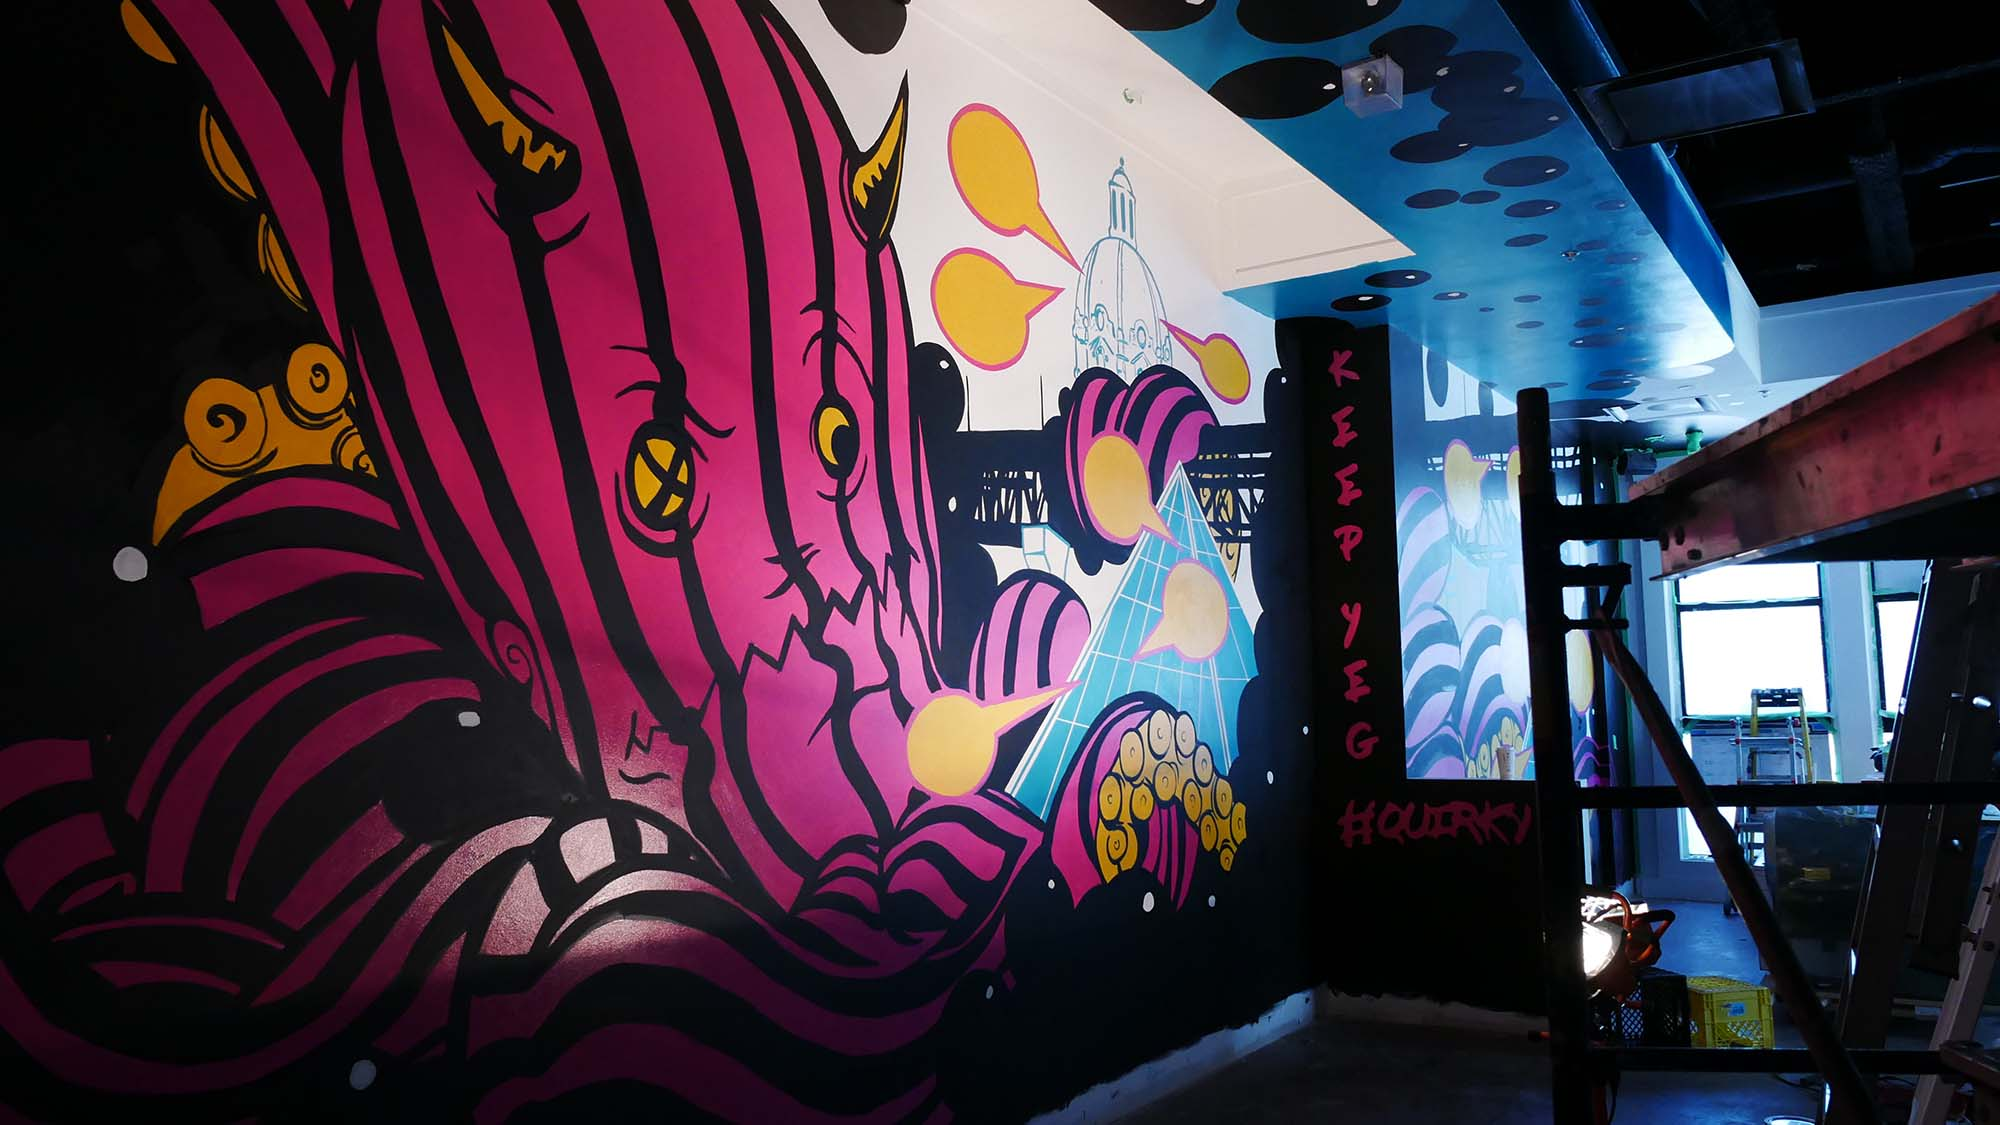 ReGrub Interior Mural Octopus Takes Over Edmonton Long Shot